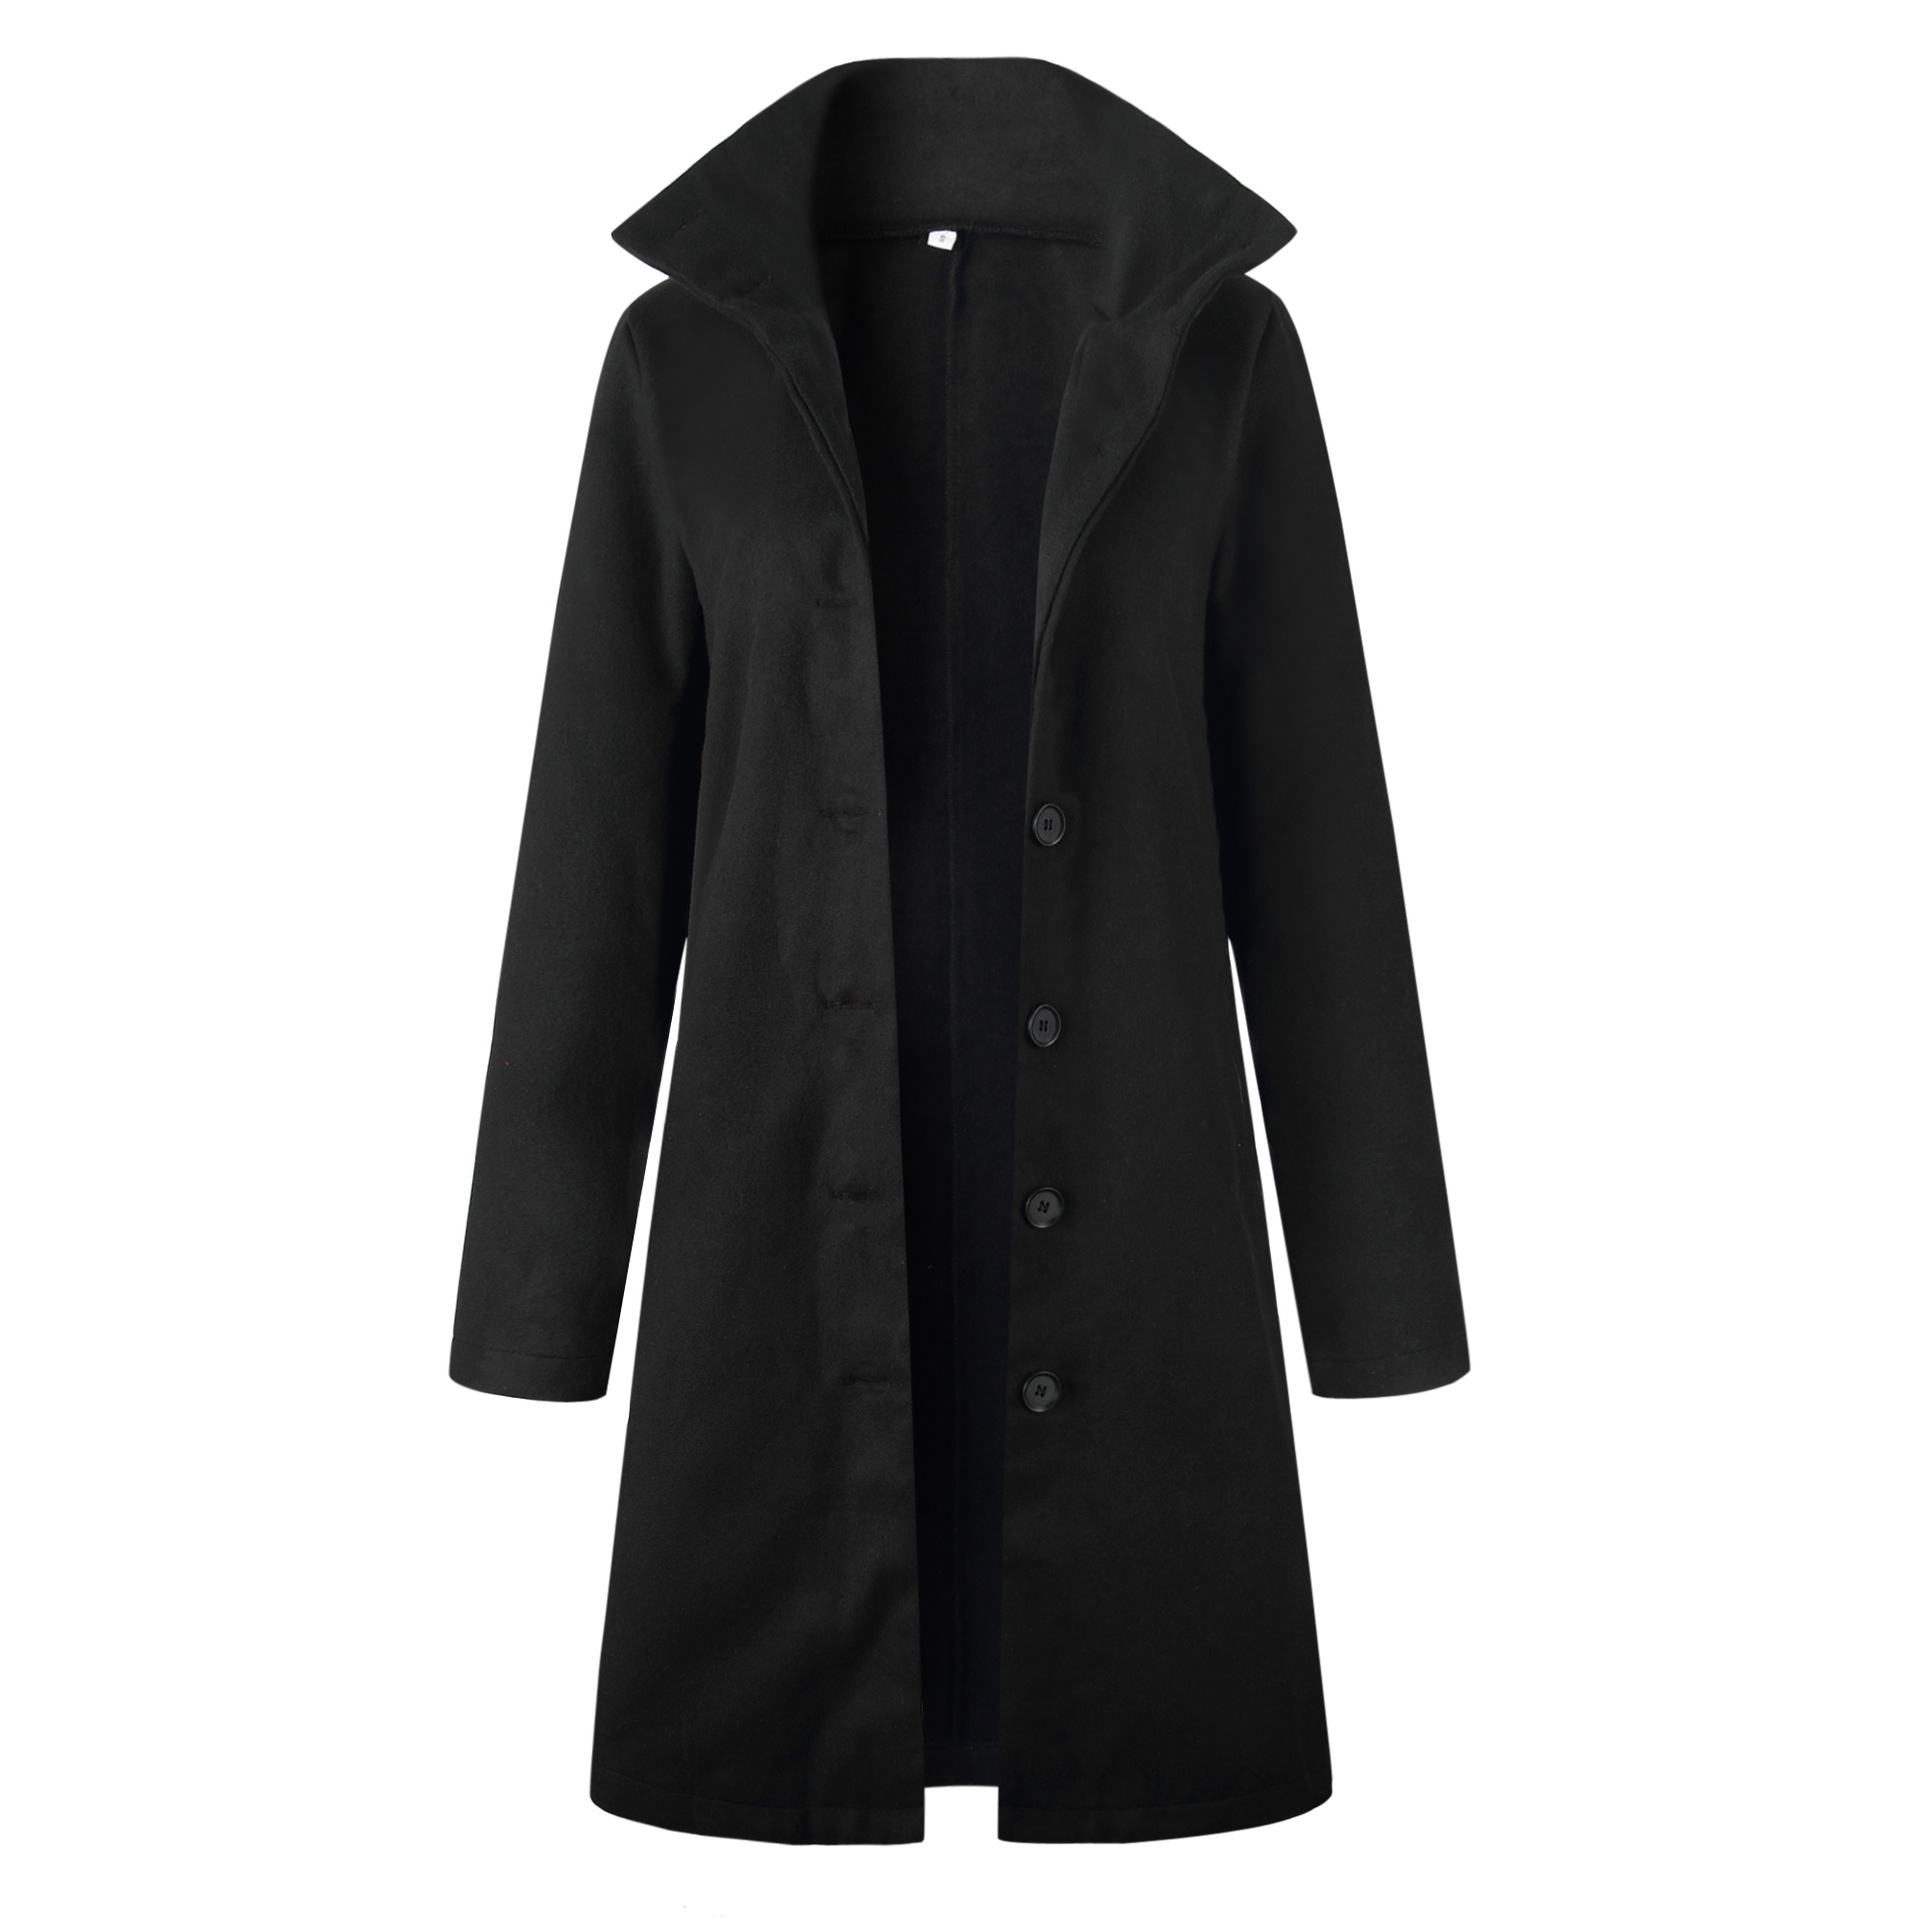 Lugentolo Women Long Coat Wool Autumn Winter Fashion Casual Black White Solid Single-breasted Street Trend Turn-down Collar Coat 7